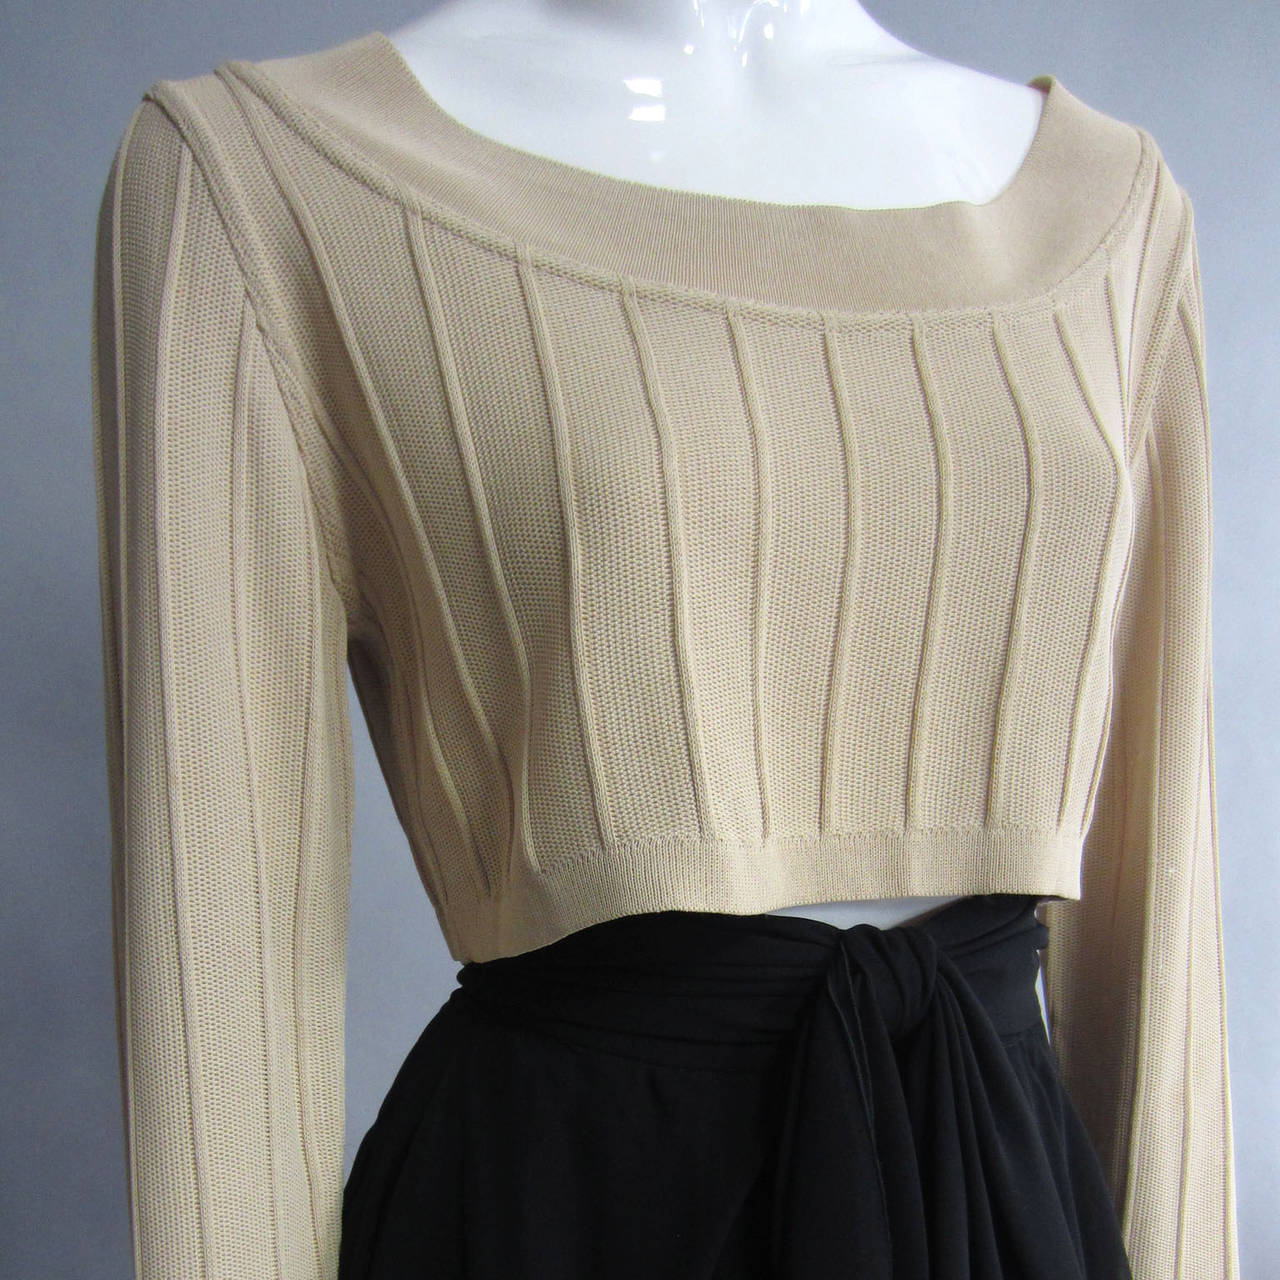 Essential ALAIA. This top has a wide, trimmed neckline. The body of the shirt features a wide set, thick, seam detailing. The vertical lines create length on this cropped shirt. Label Present. Measurements taken Unstretched.